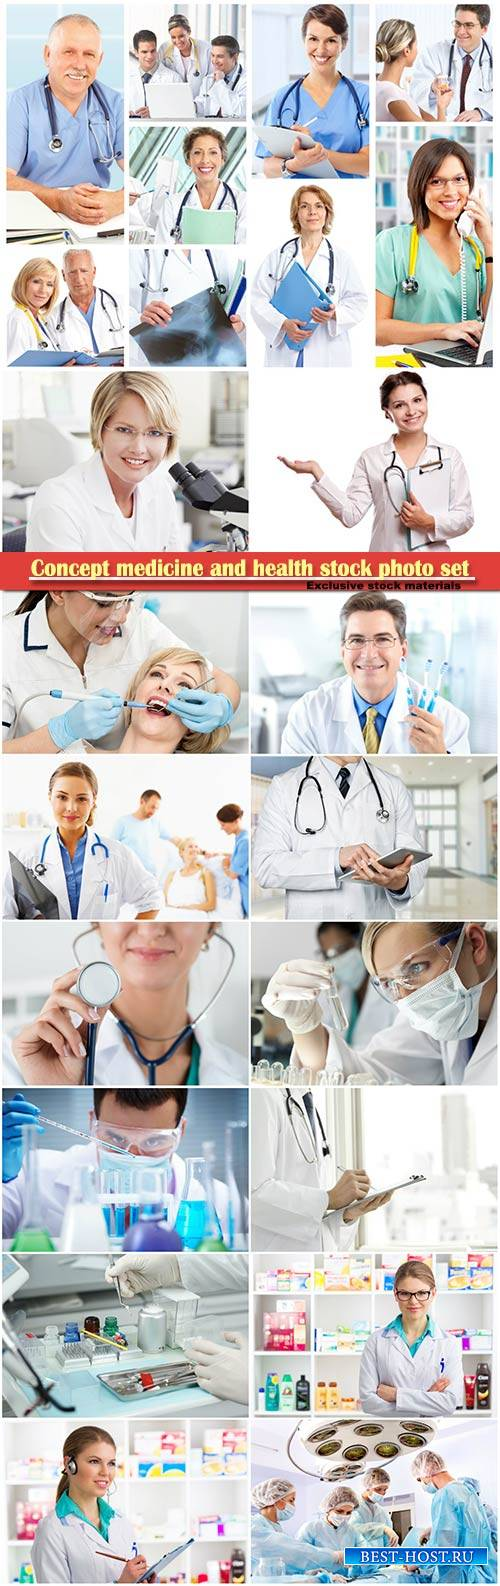 Concept medicine and health stock photo set